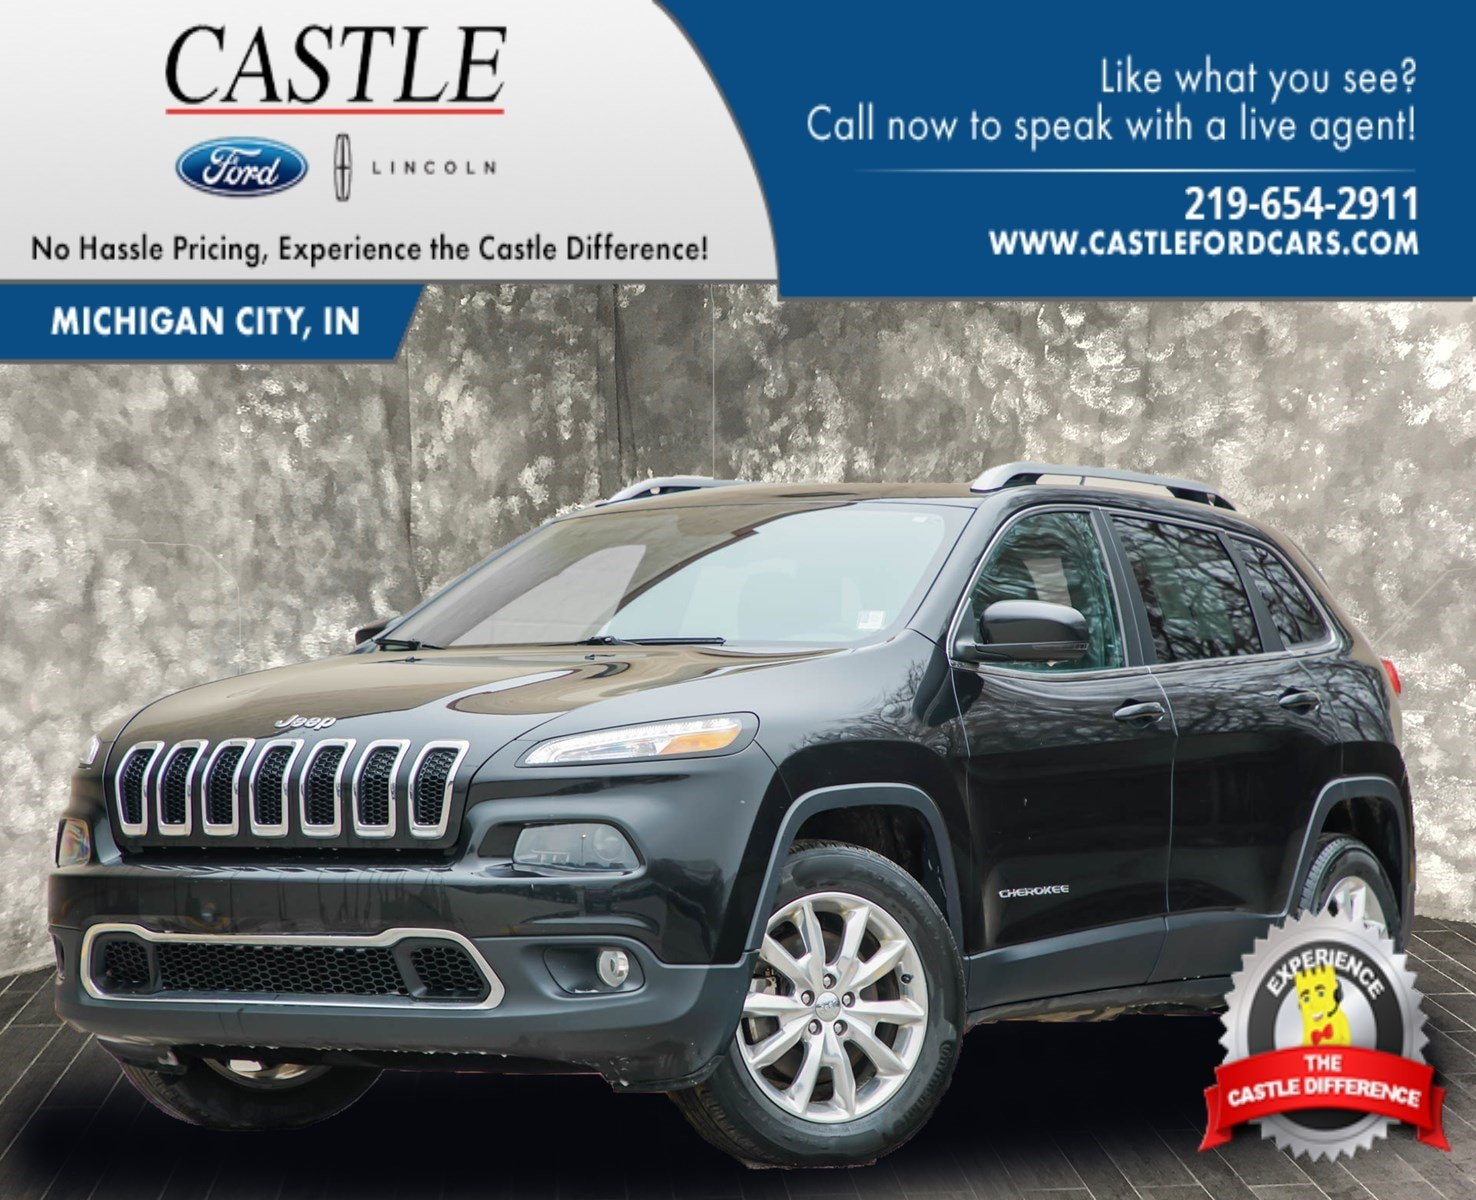 2015 Jeep Cherokee Limited 4WD  Limited